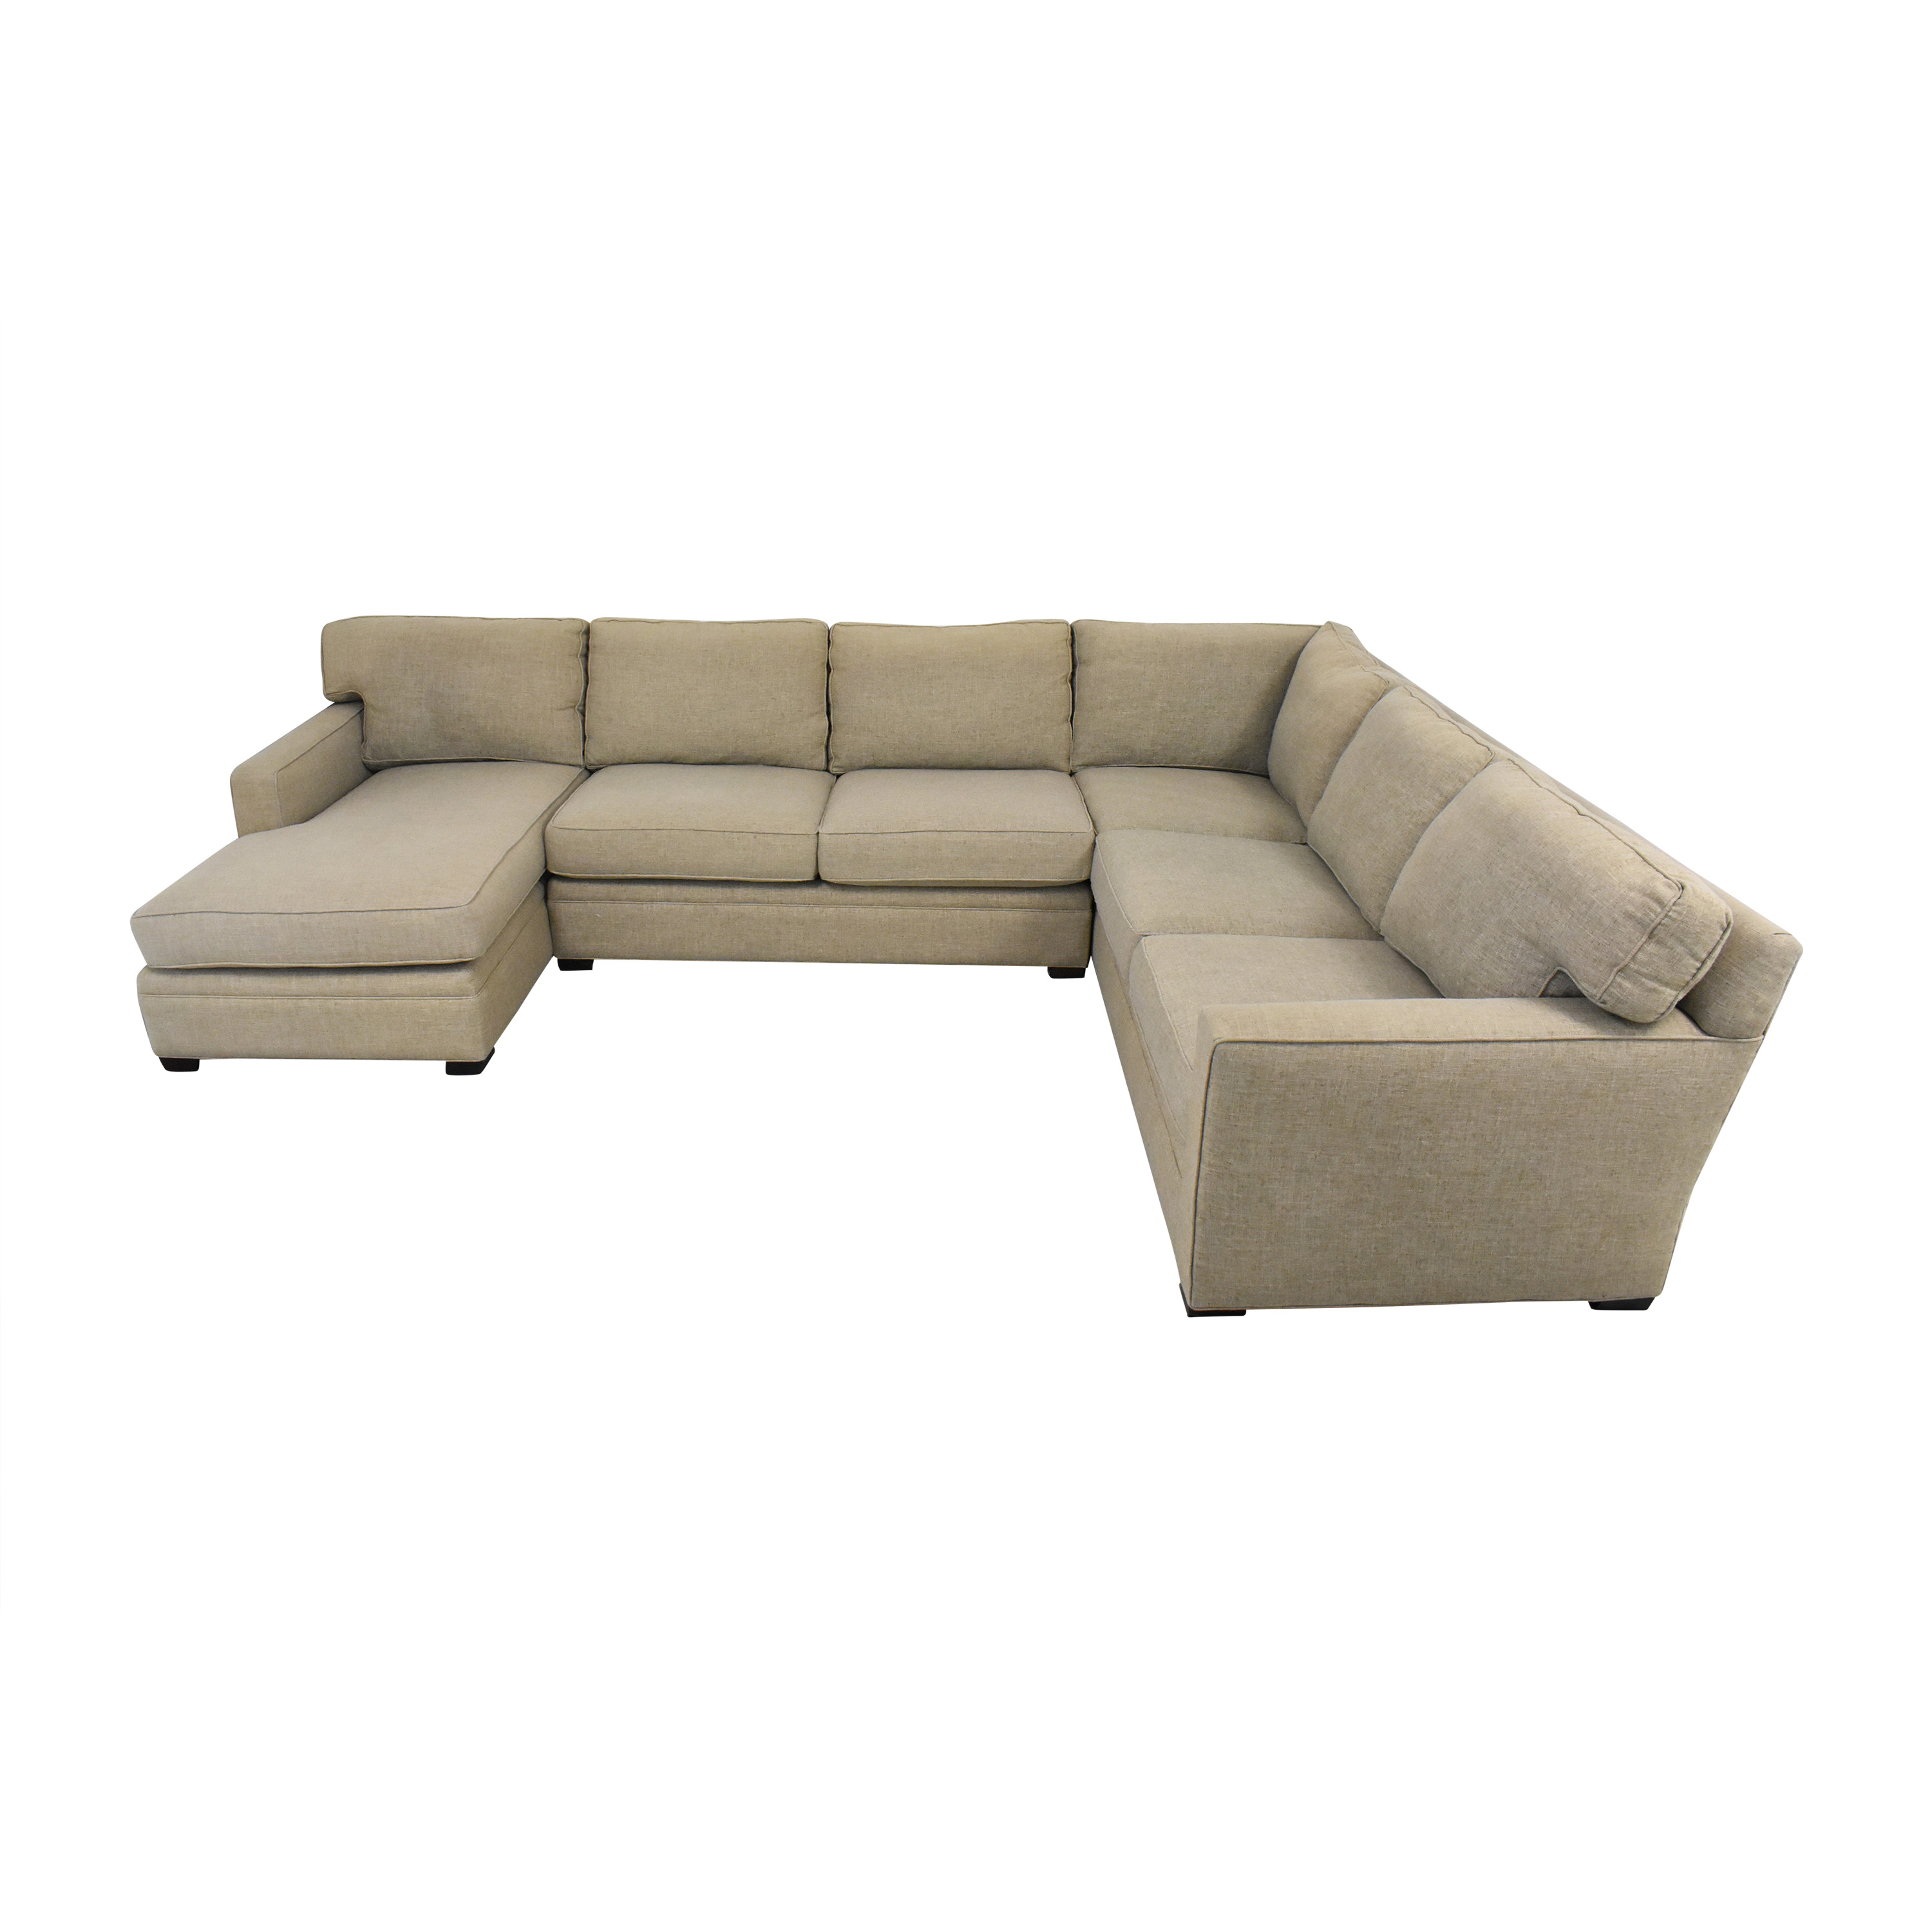 Lillian August Lillian August L Shaped Sectional Sofa with Chaise second hand